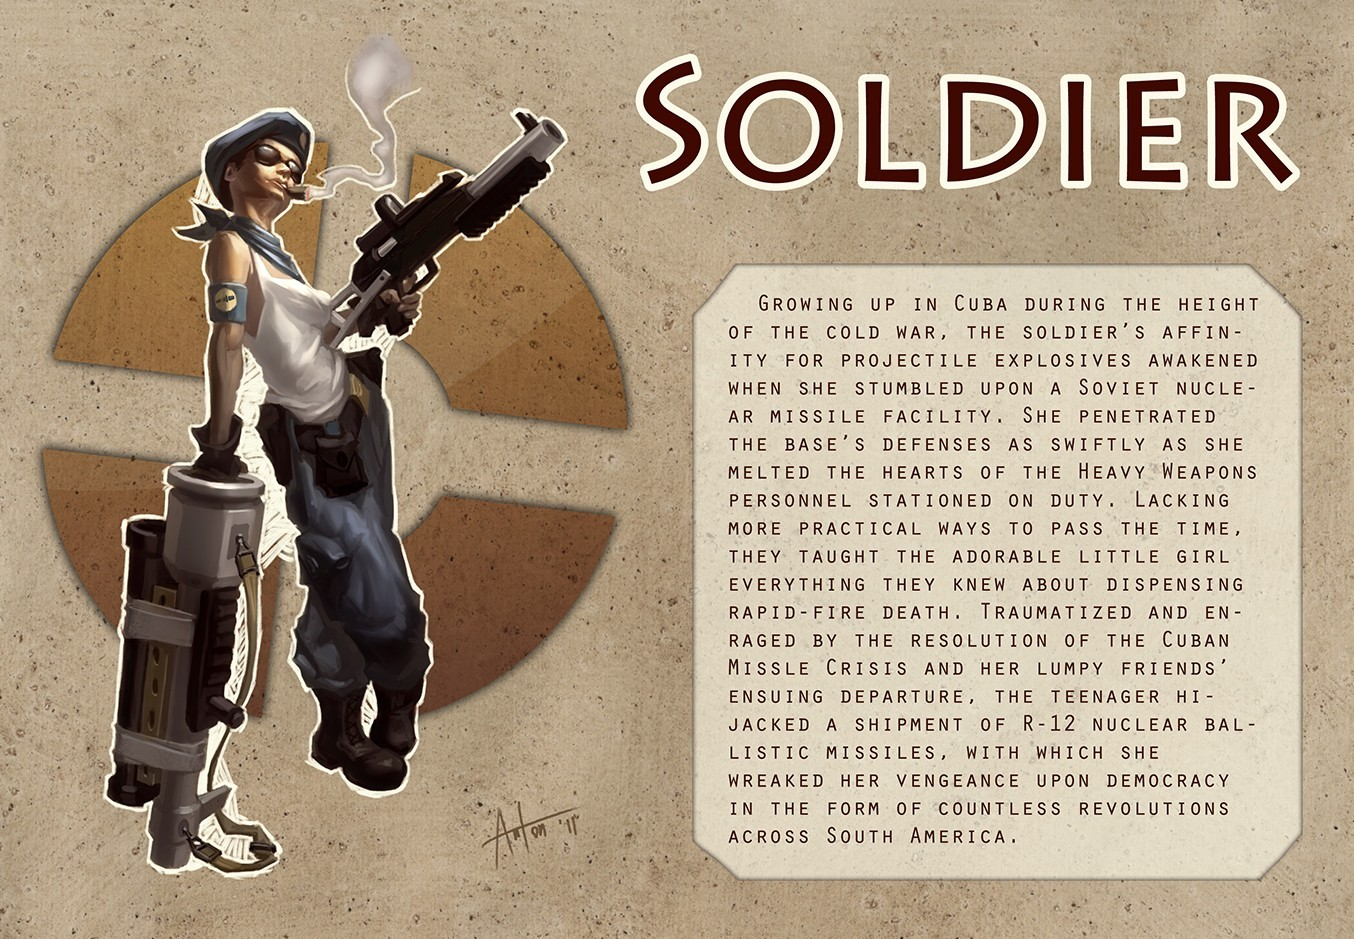 soldier rule 63 team HD Wallpaper